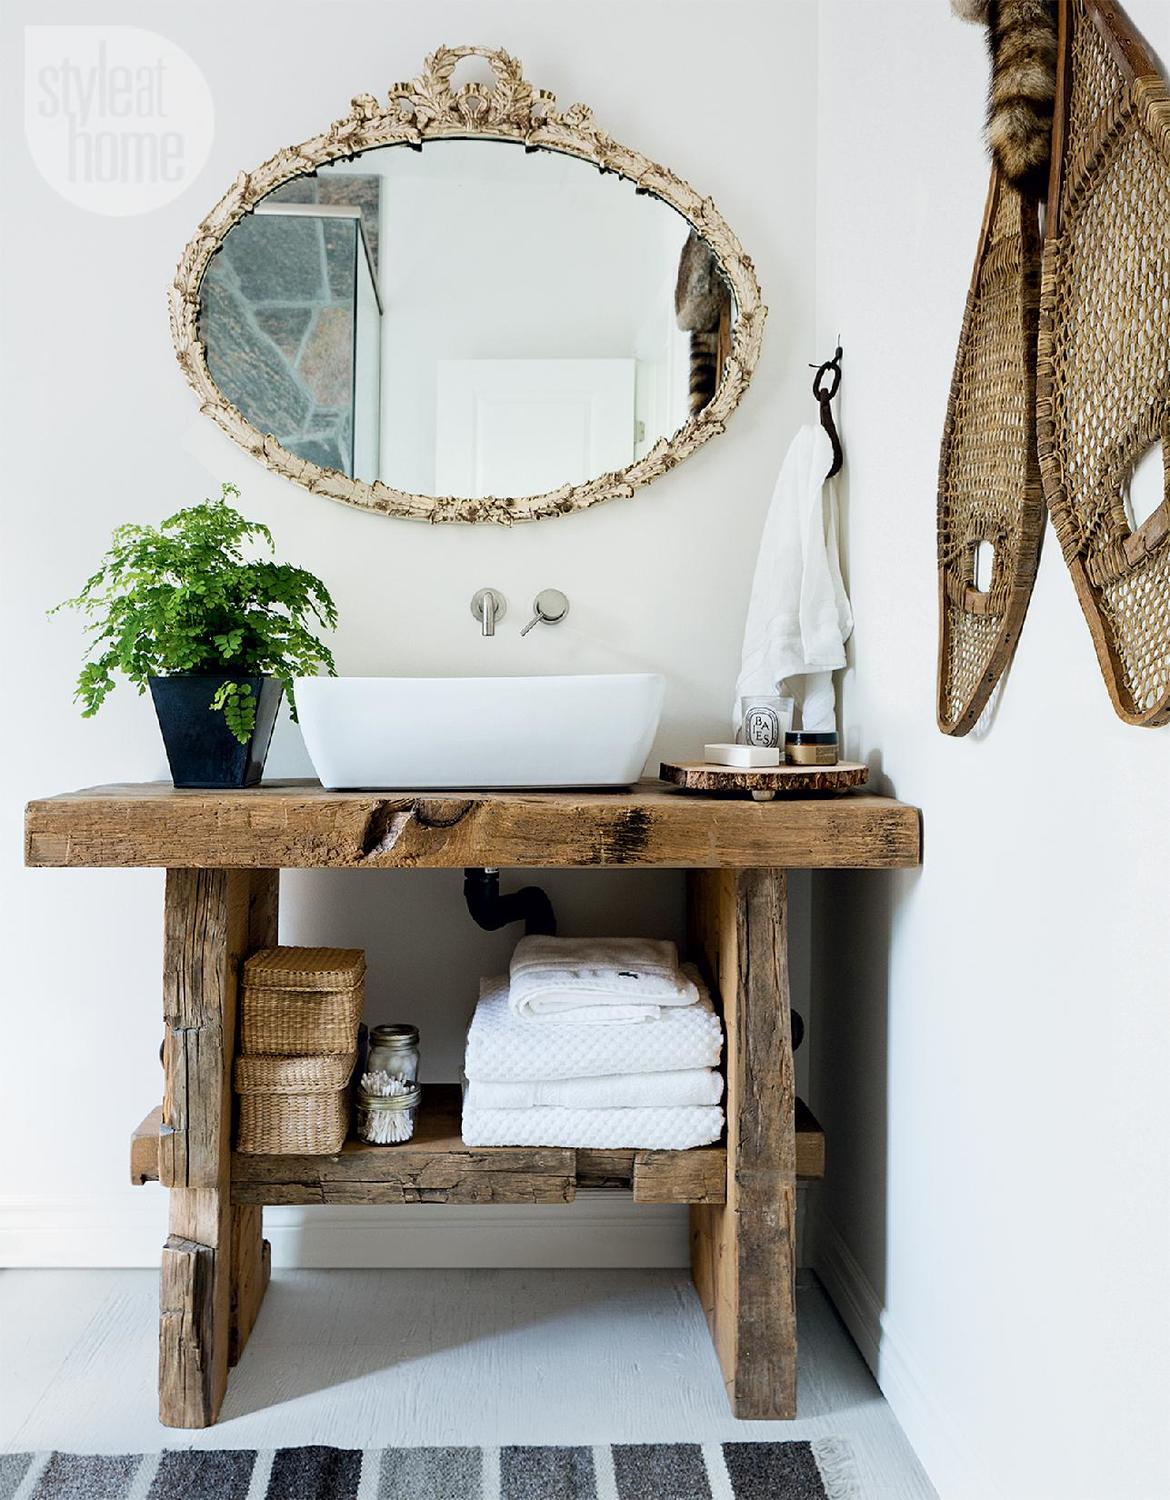 Modern Vessel Sink On A Rough Hewn Vanity From Wooden Beams